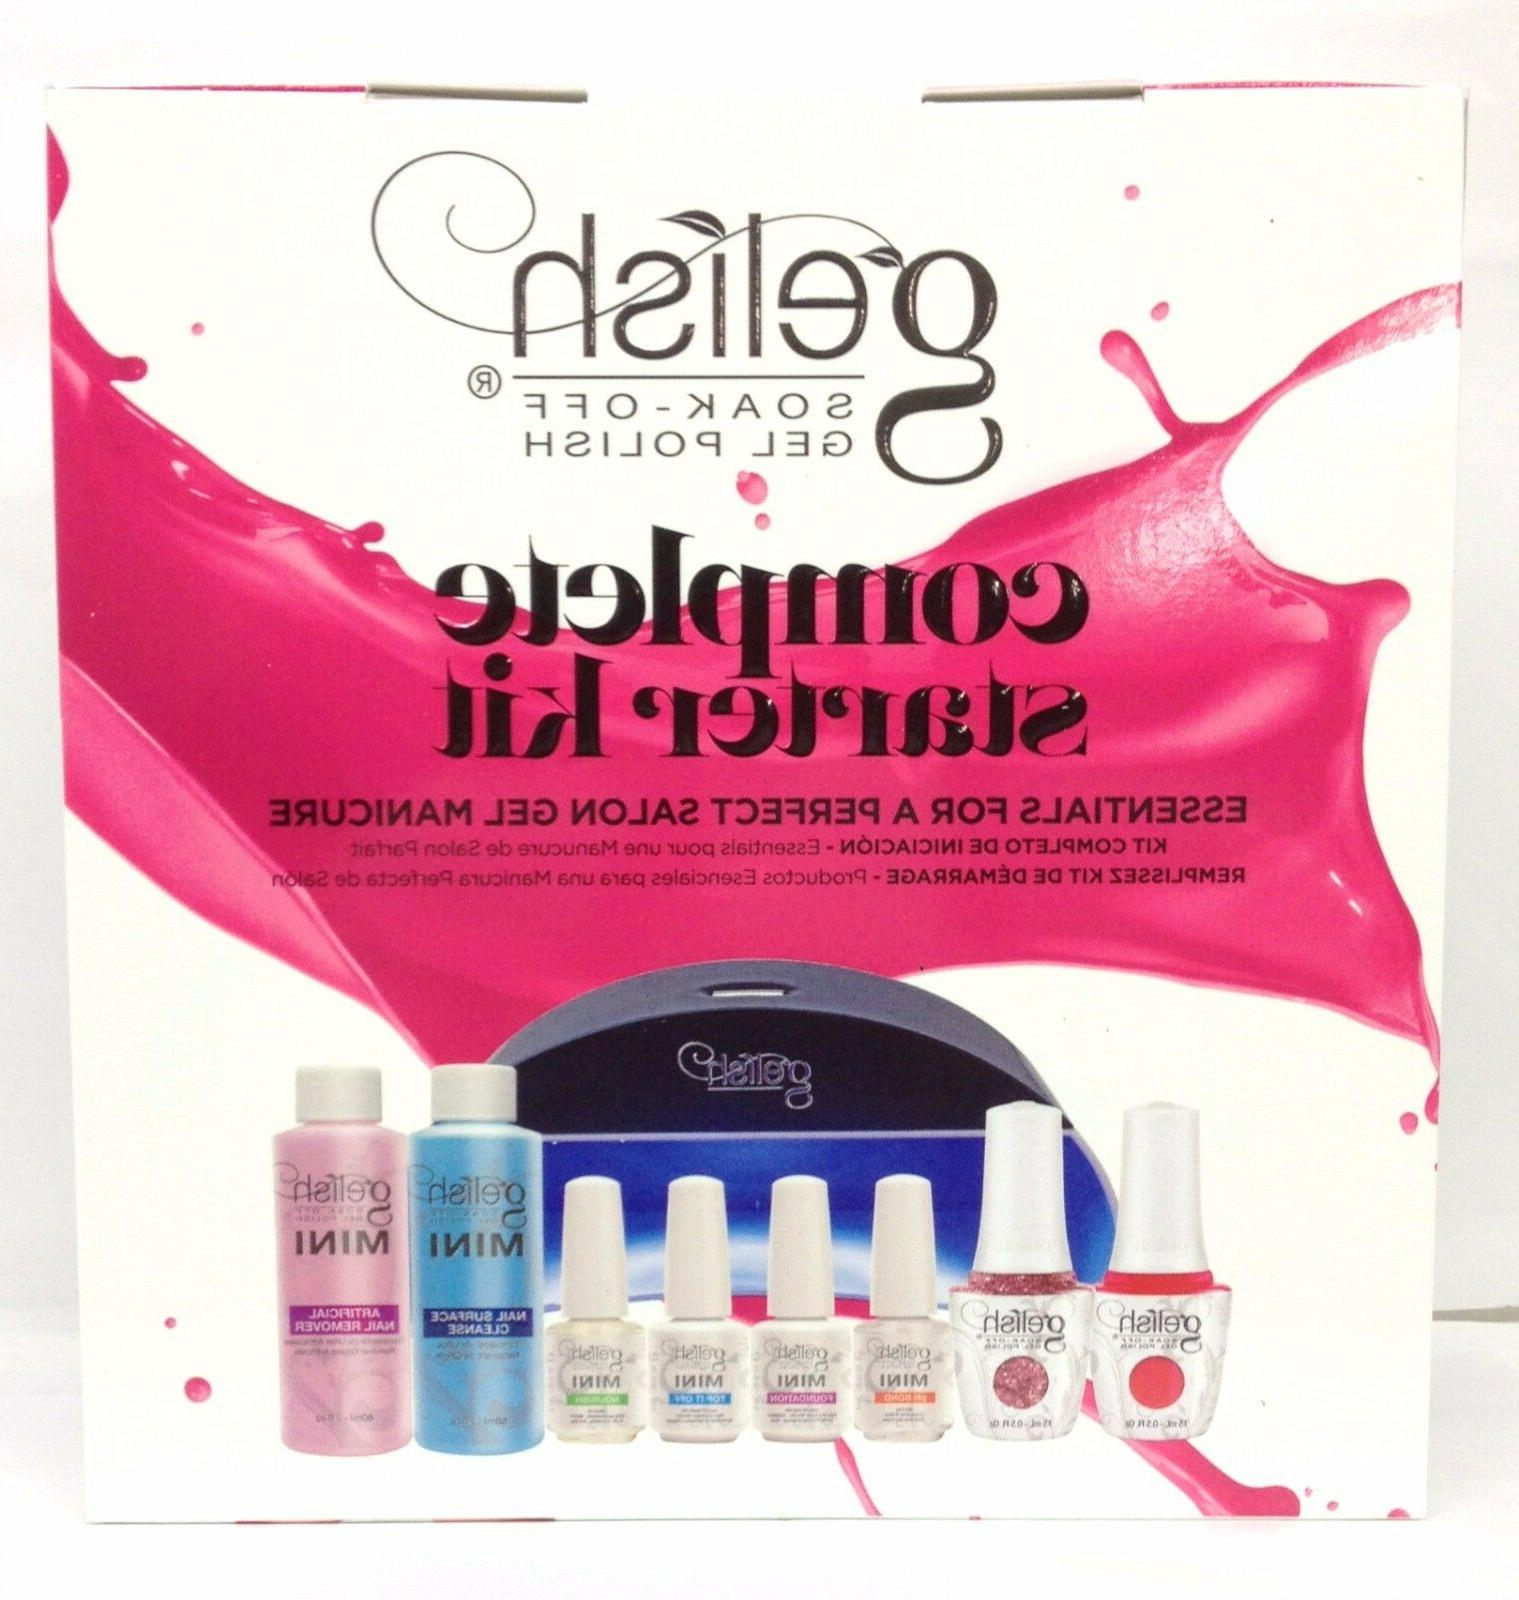 Harmony Gelish- COMPLETE STARTER KIT + Pick Any 2 Colors